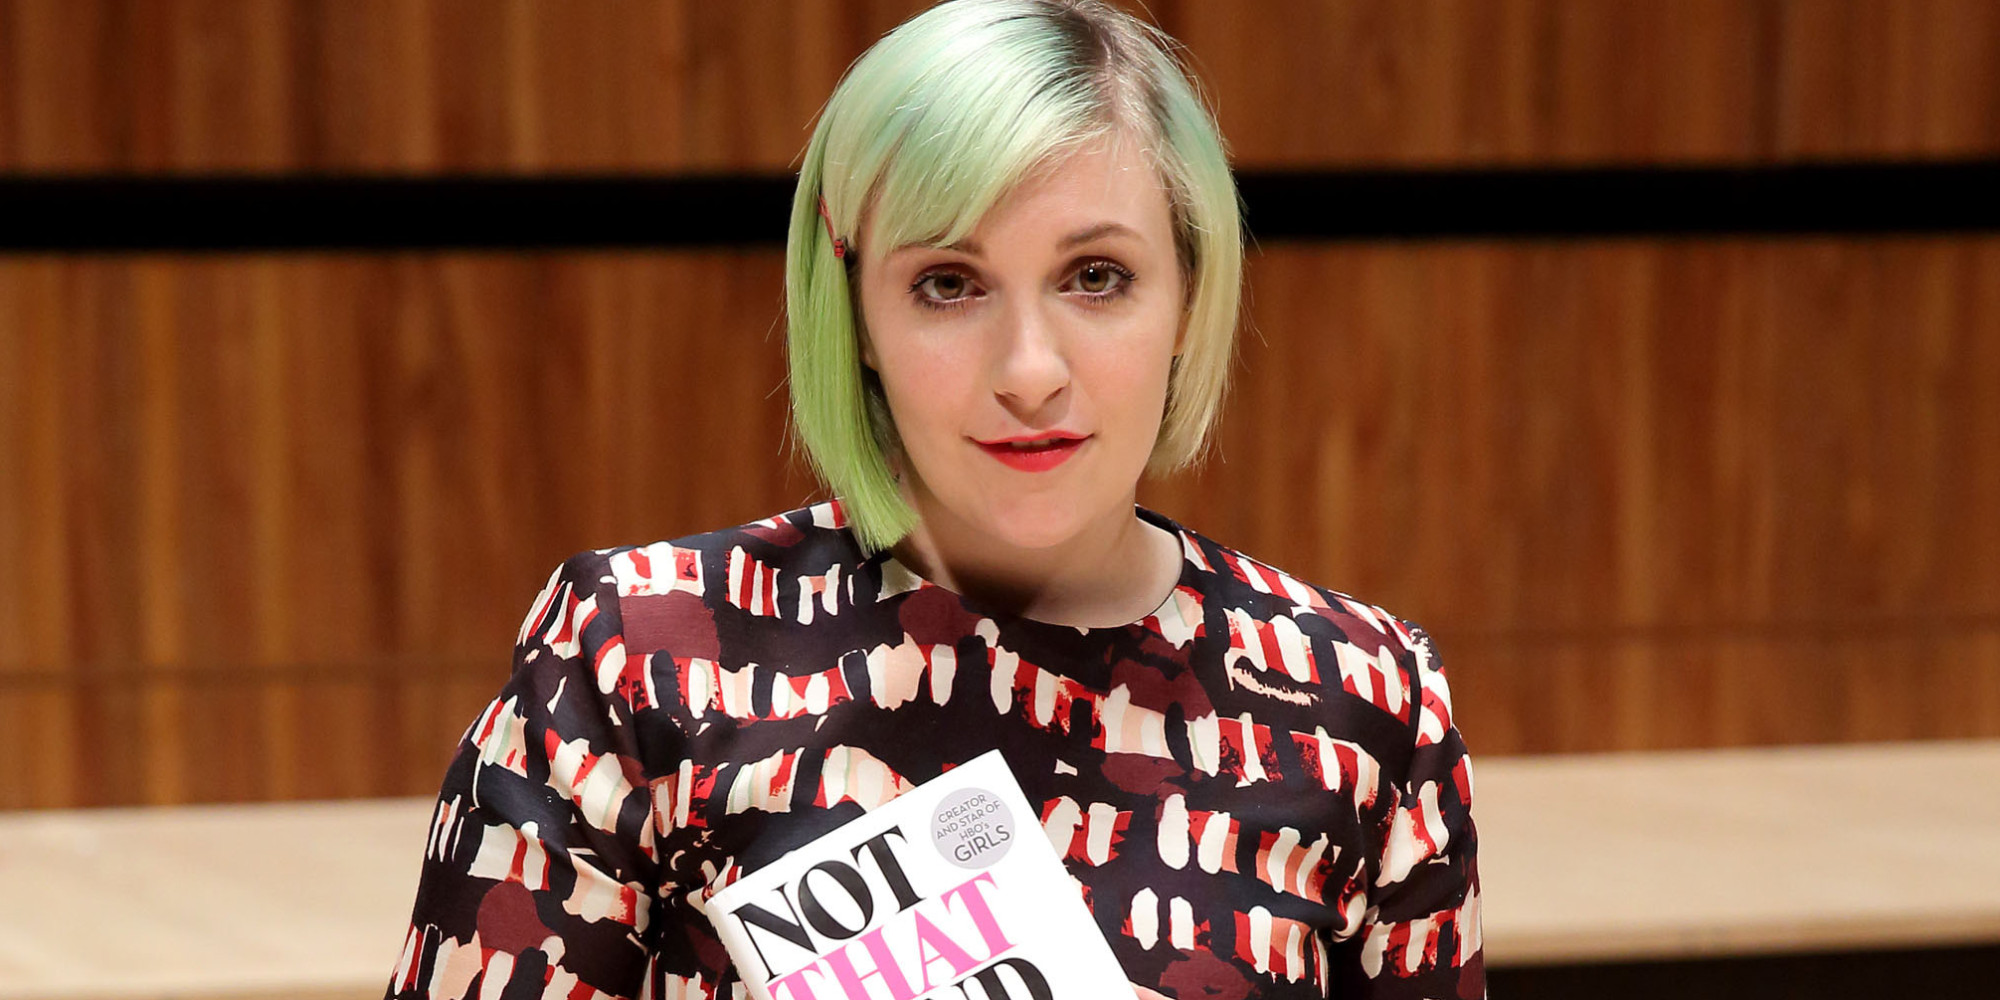 I Am A Liberal And I Do Not Approve Of Lena Dunham S